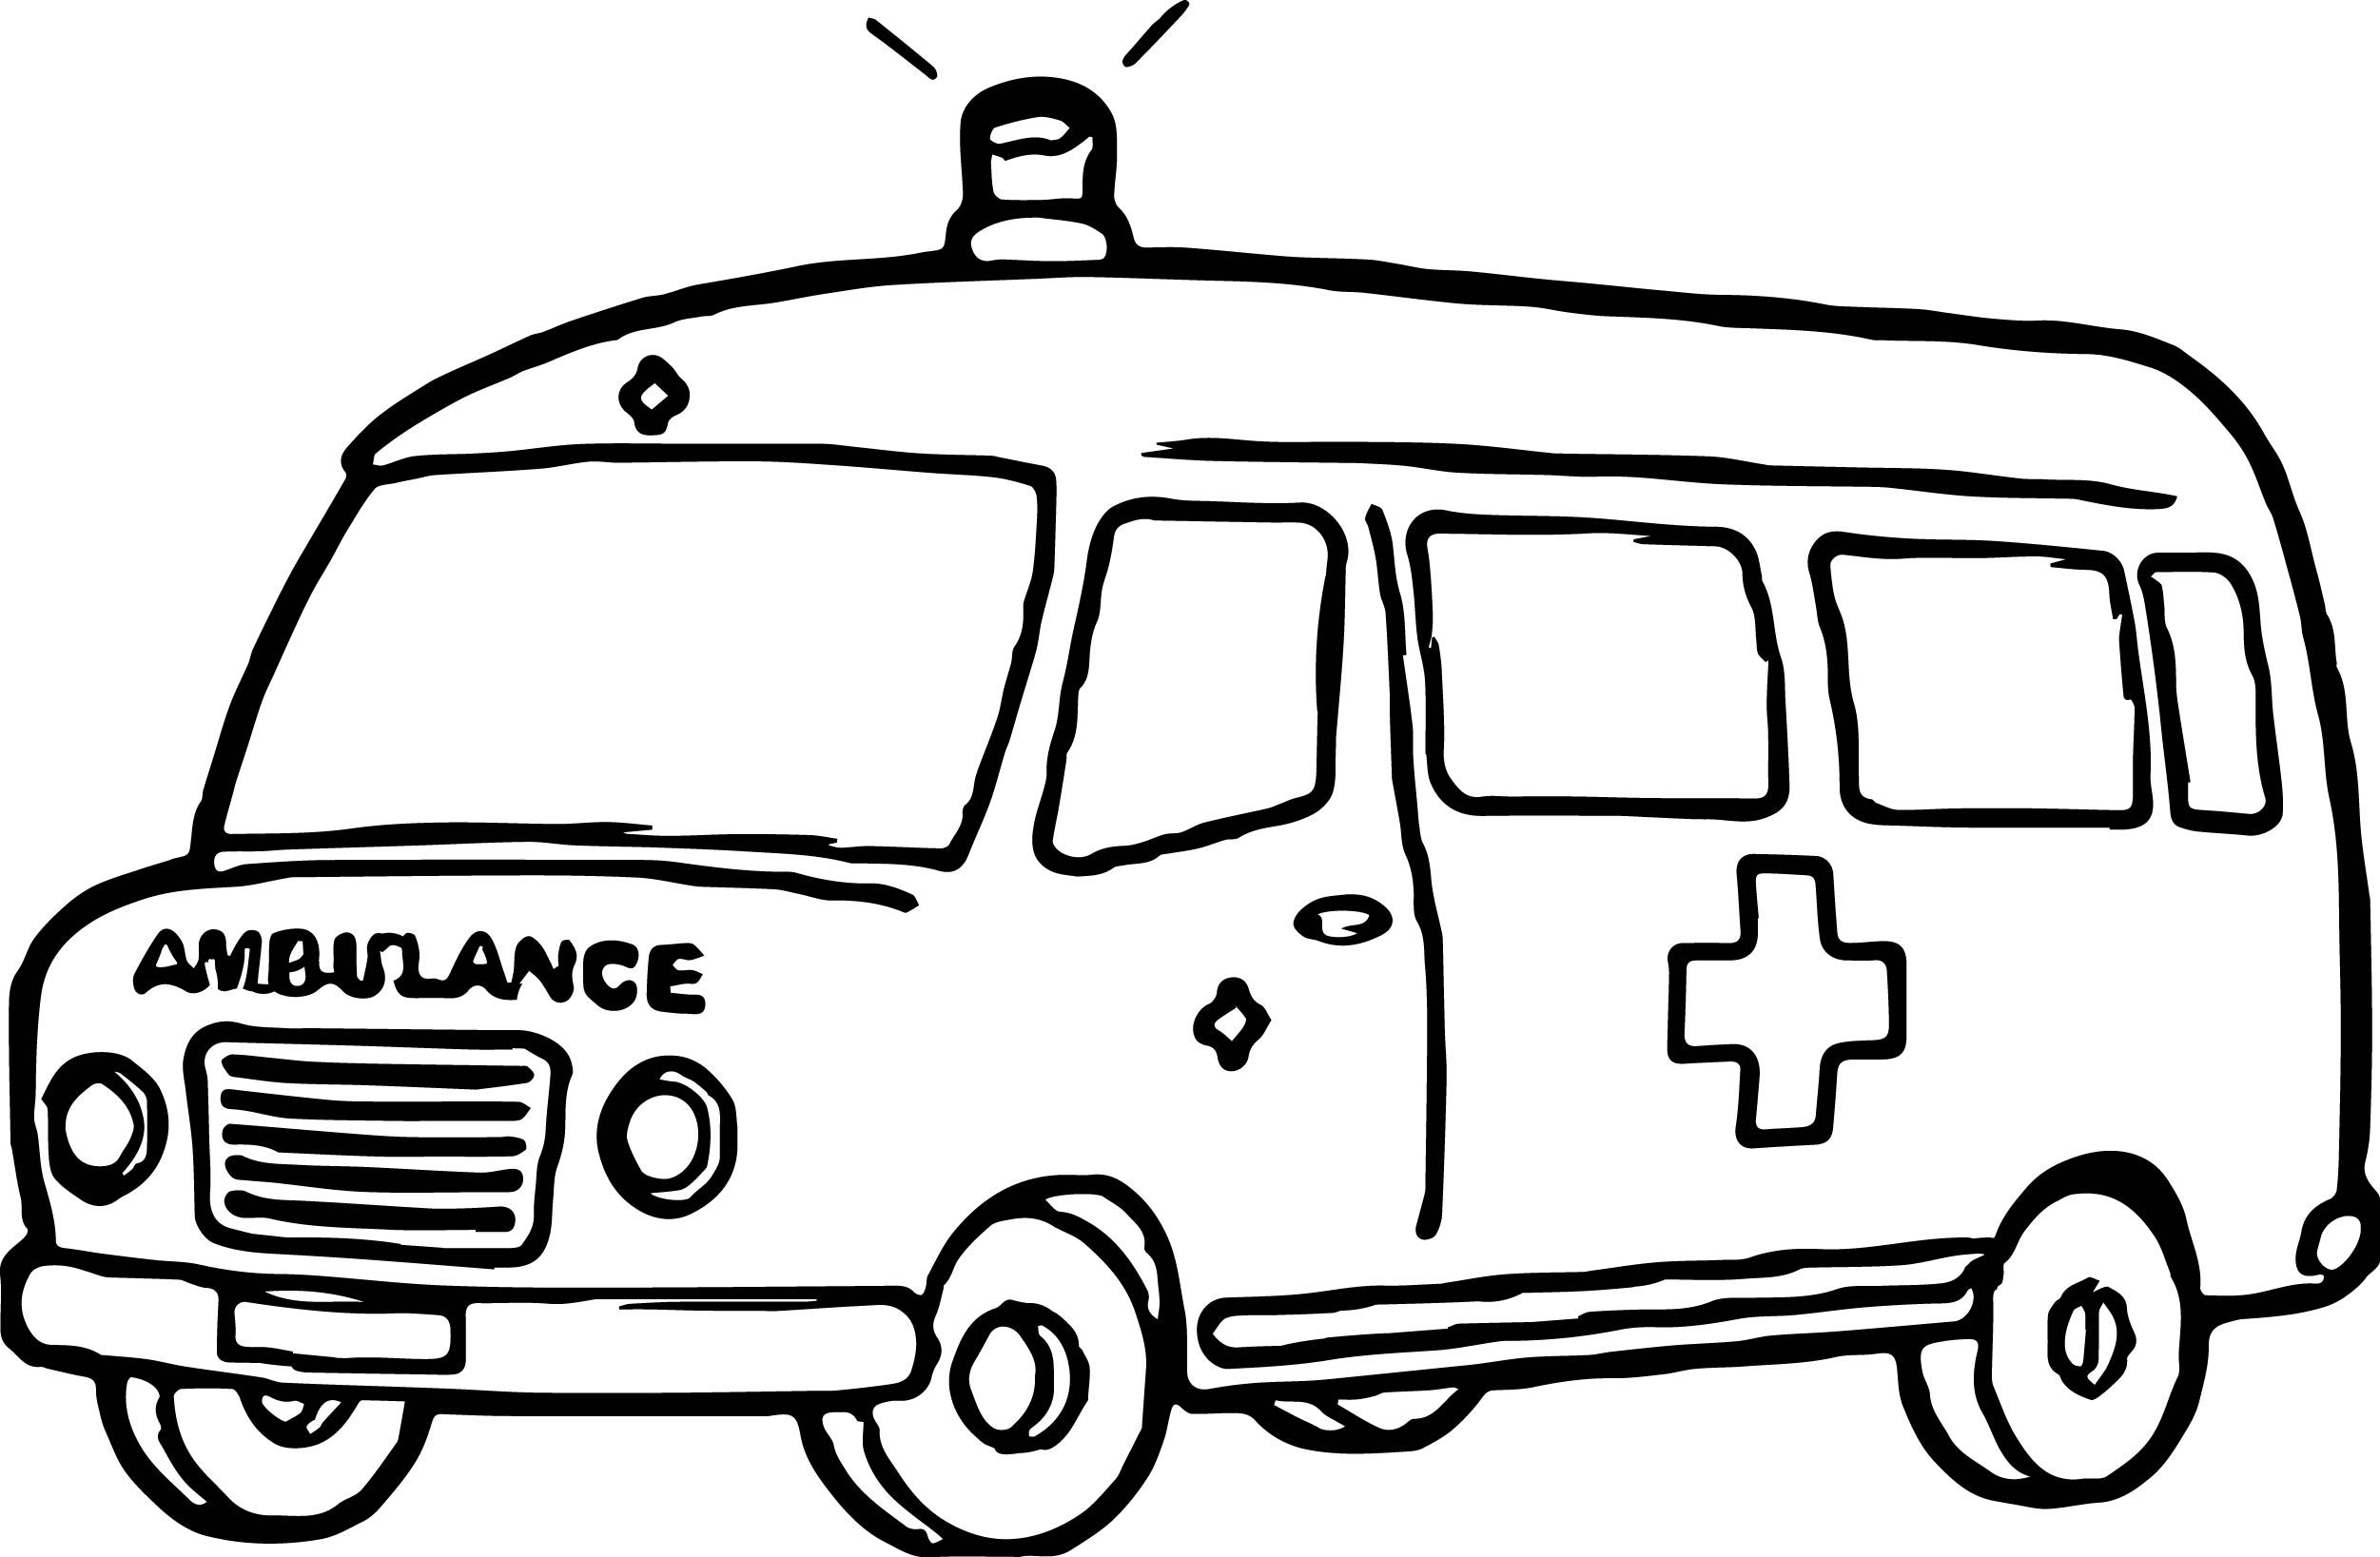 Ambulance Coloring Pages Review Designs Trend